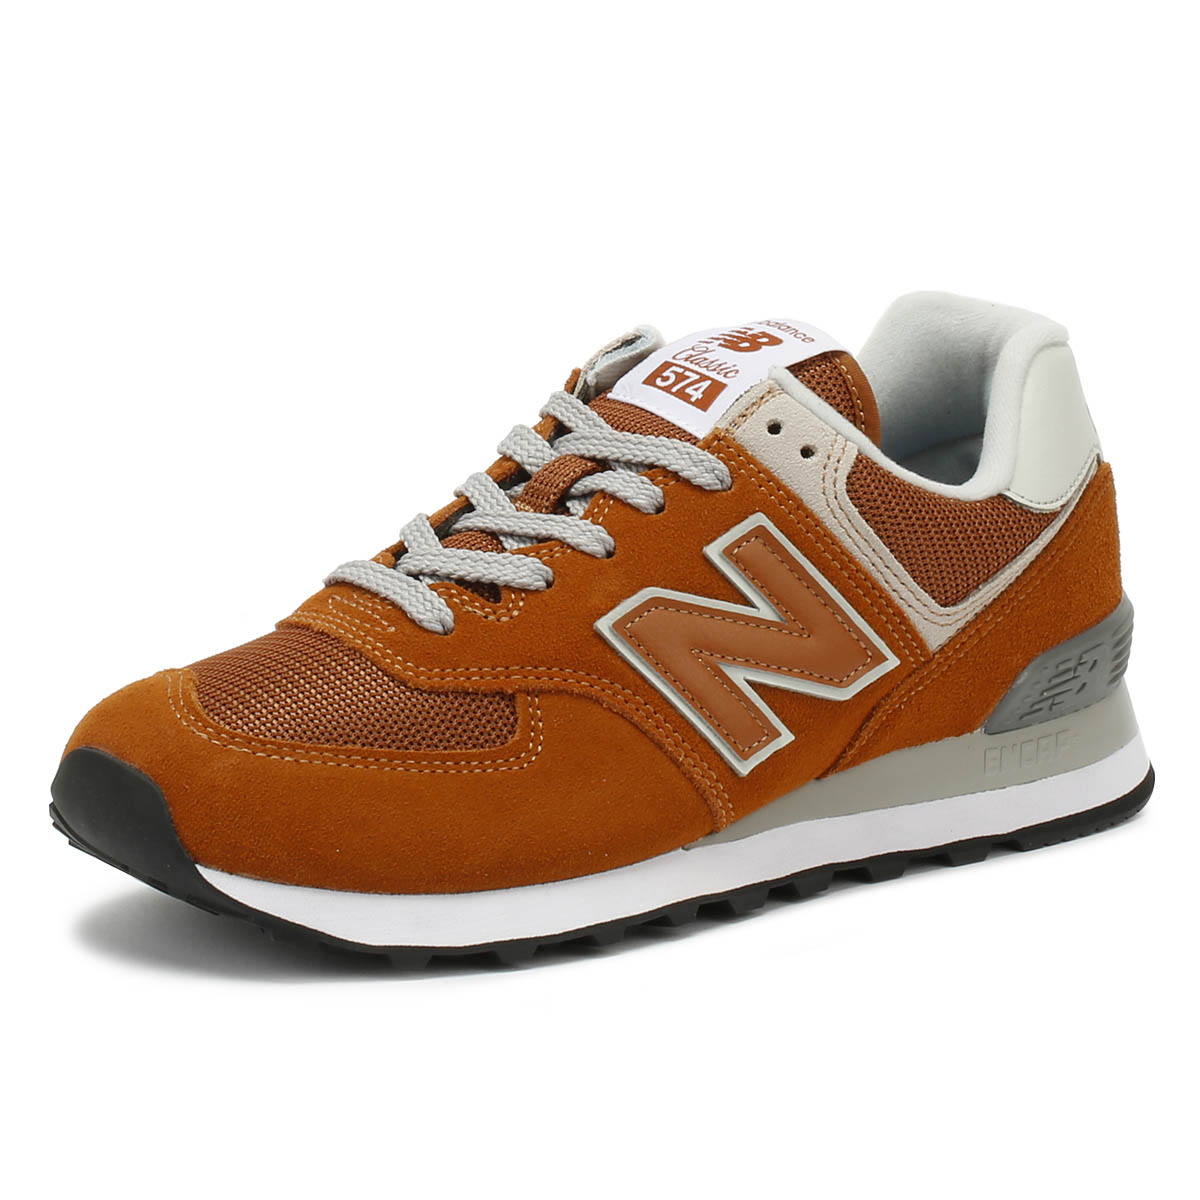 3f449a362e9e Details about New Balance Mens Trainers 574 Orange Classic Lace Up Sport  Running Shoes